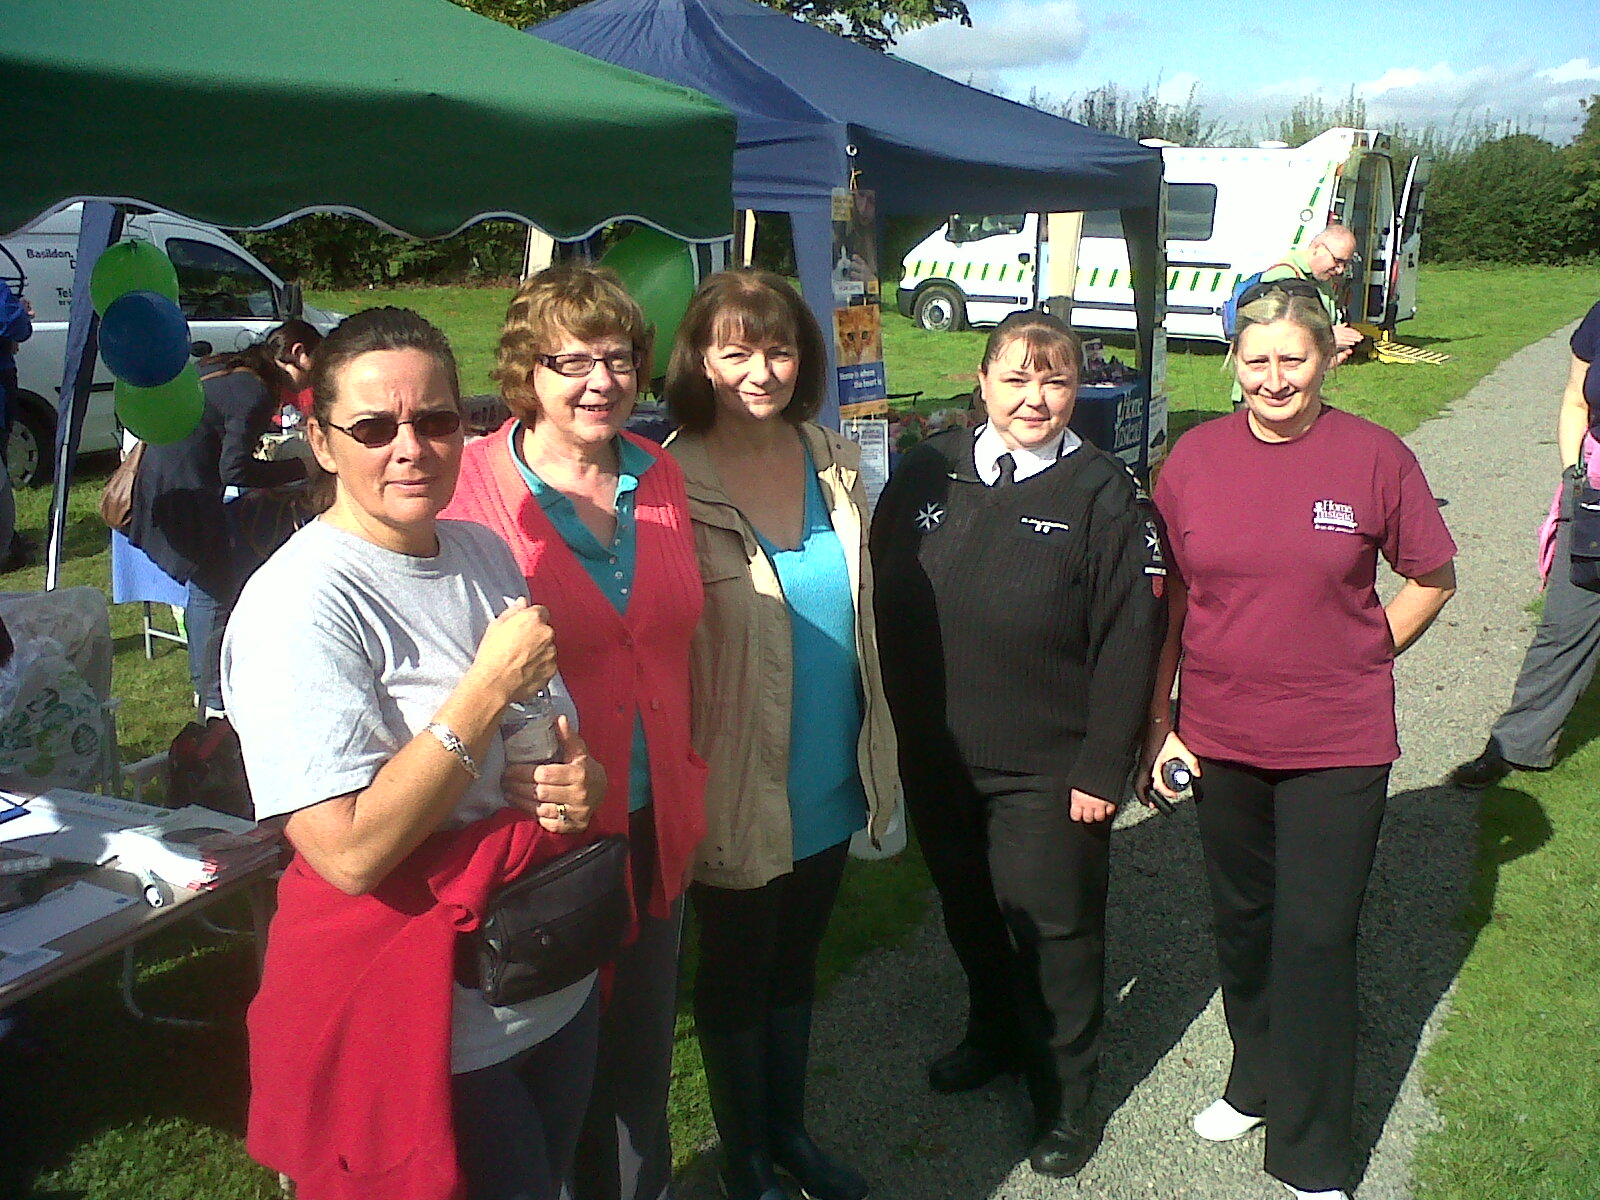 Home Instead Senior Care Brentwood team members at the Alzheimer's Society Memory Walk